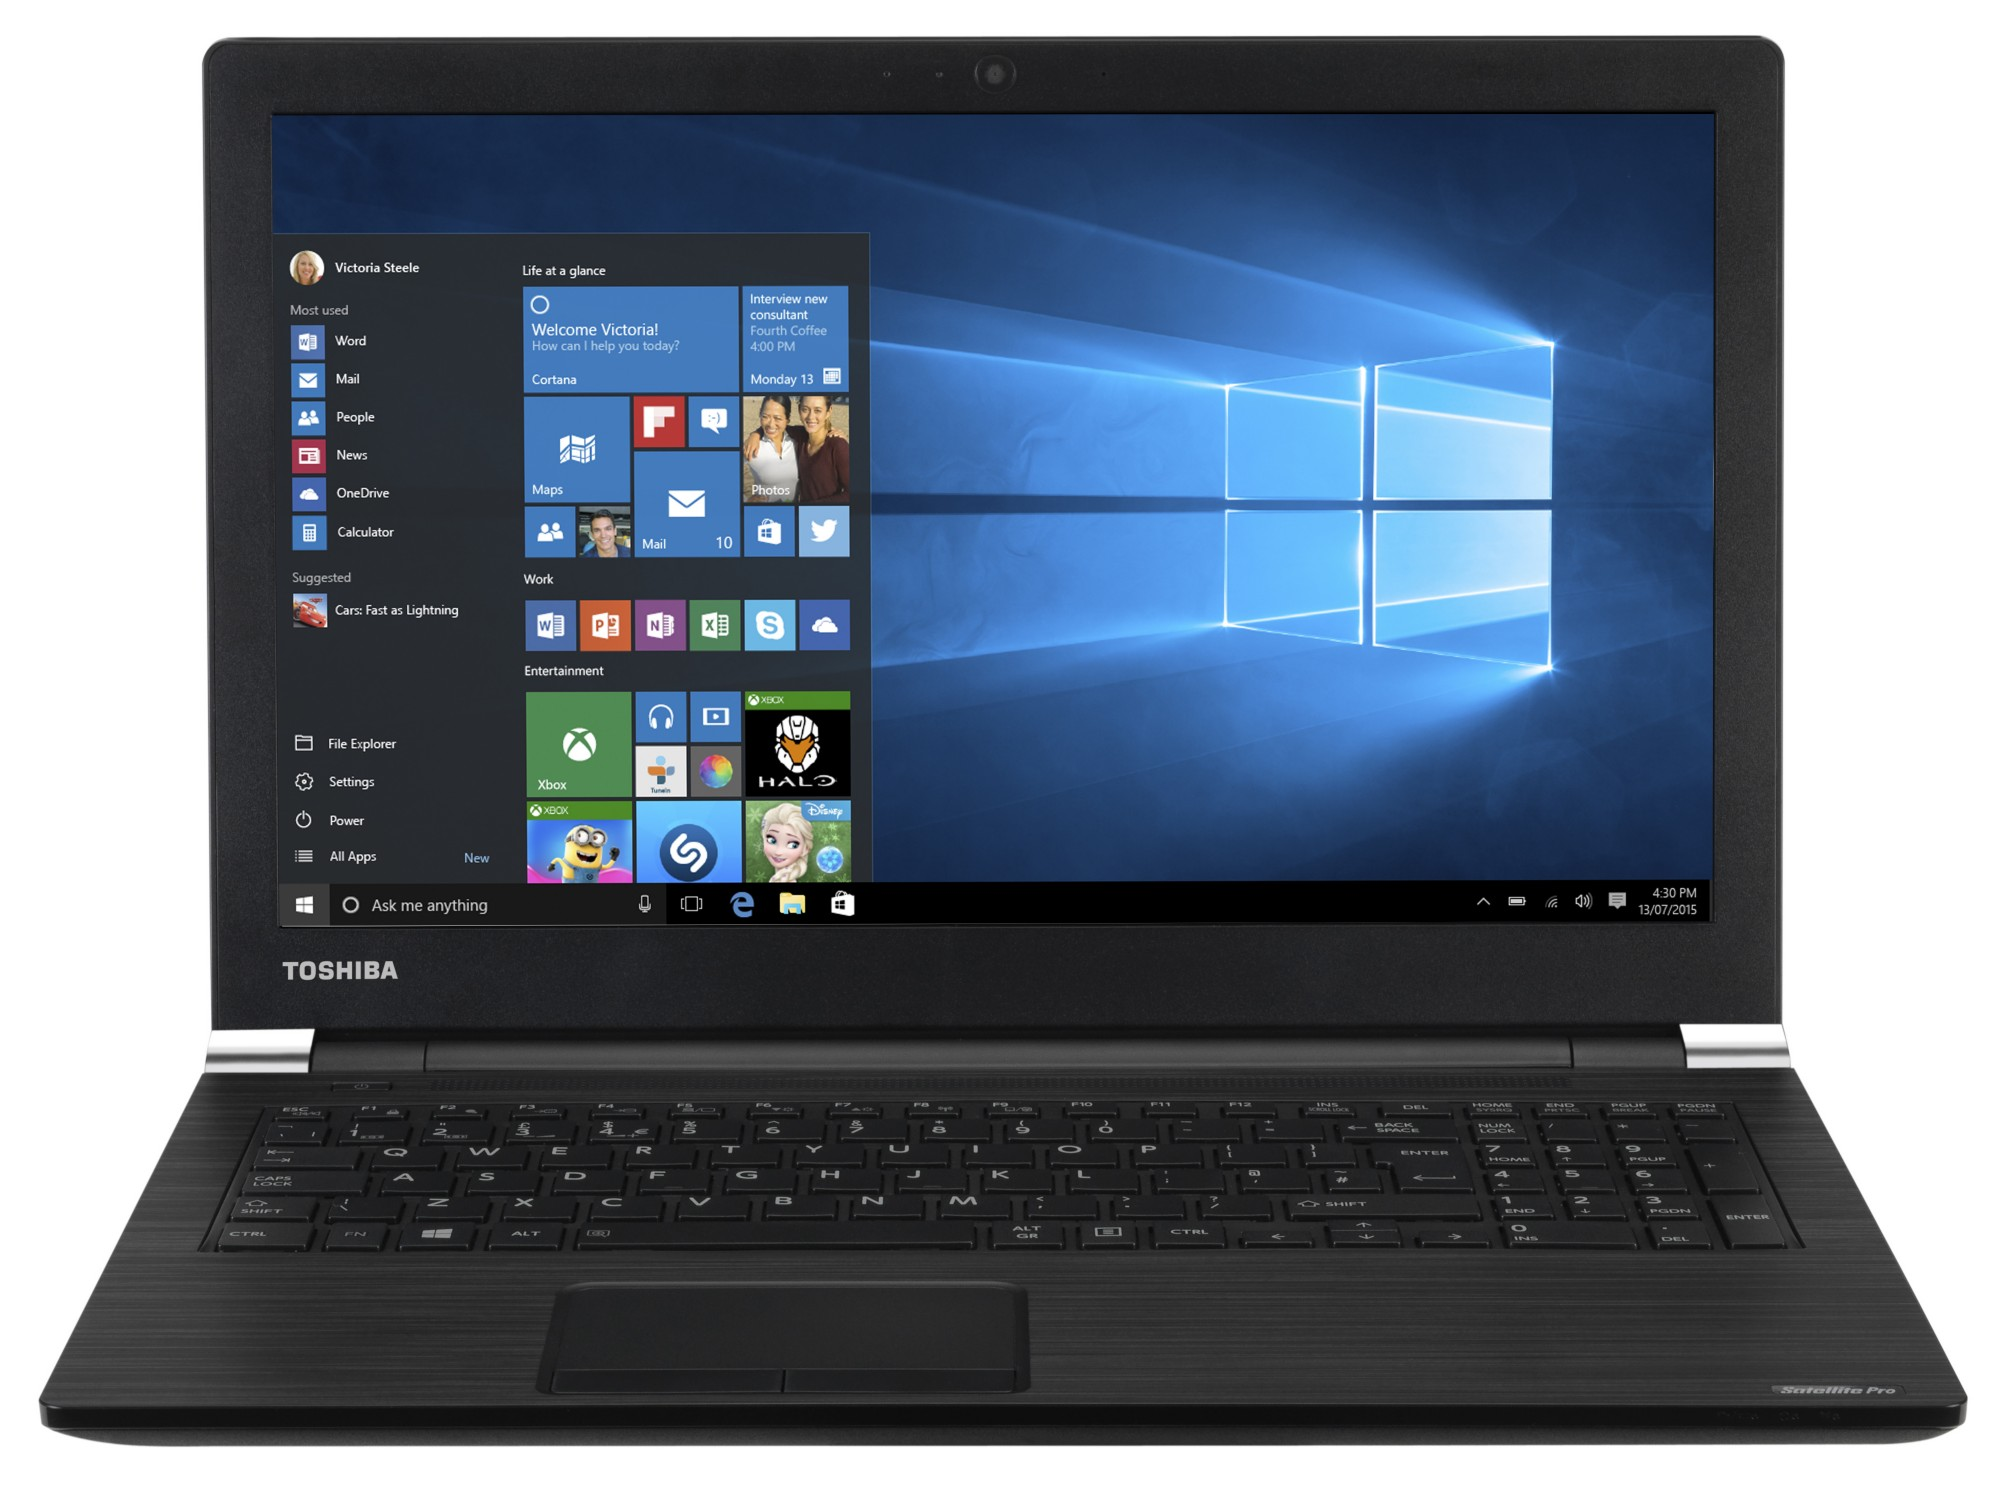 Toshiba Port A30 D 19R 13.3in i5 8GB Notebook